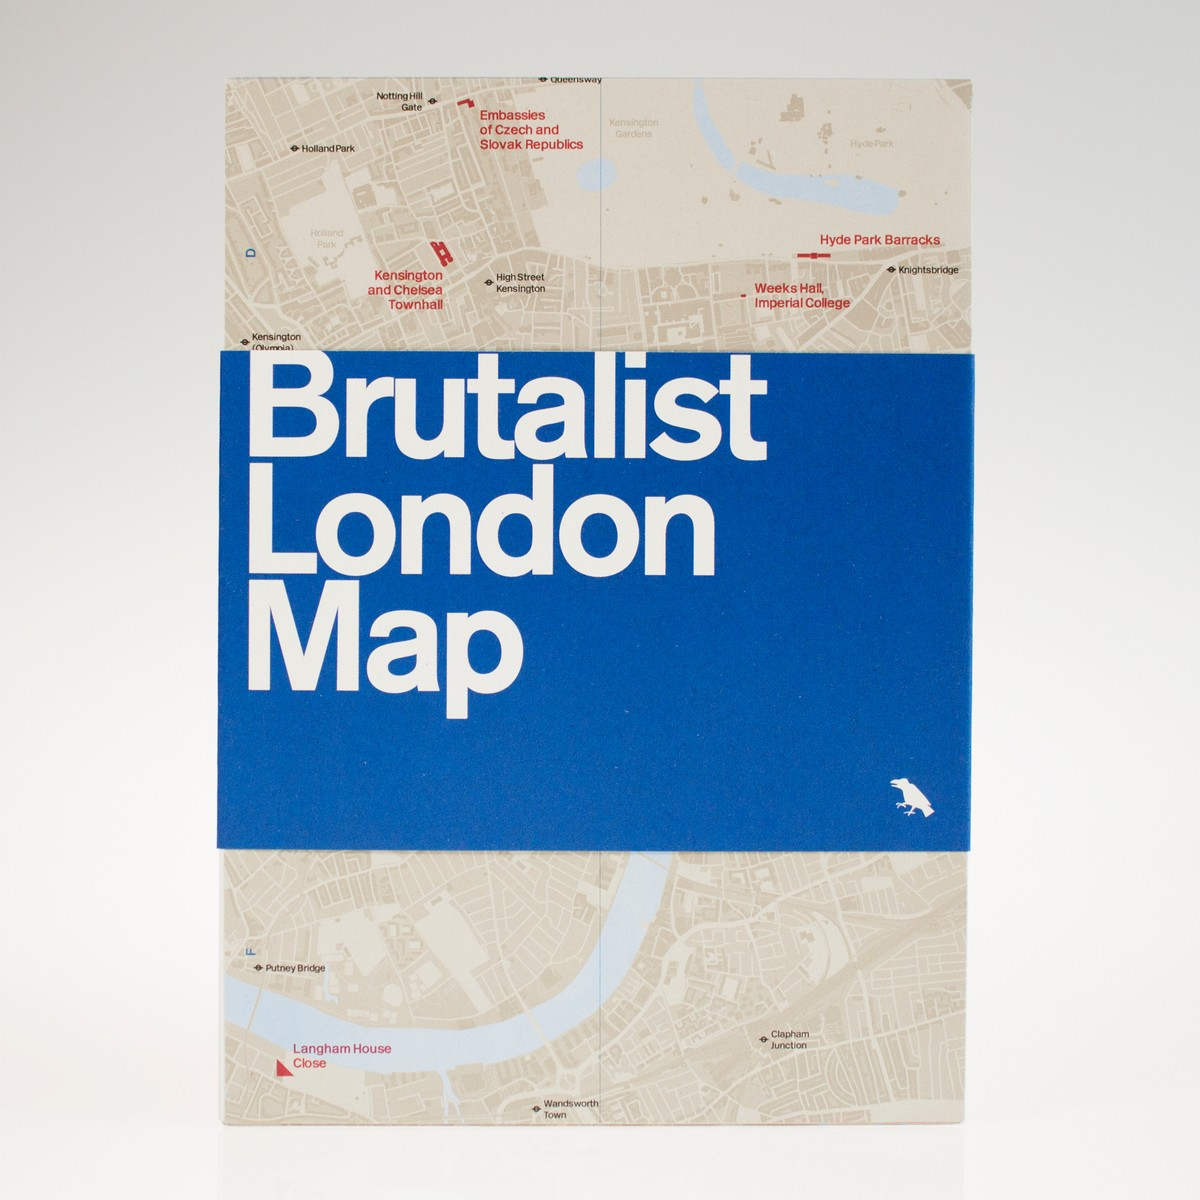 Photo of Brutalist London Map